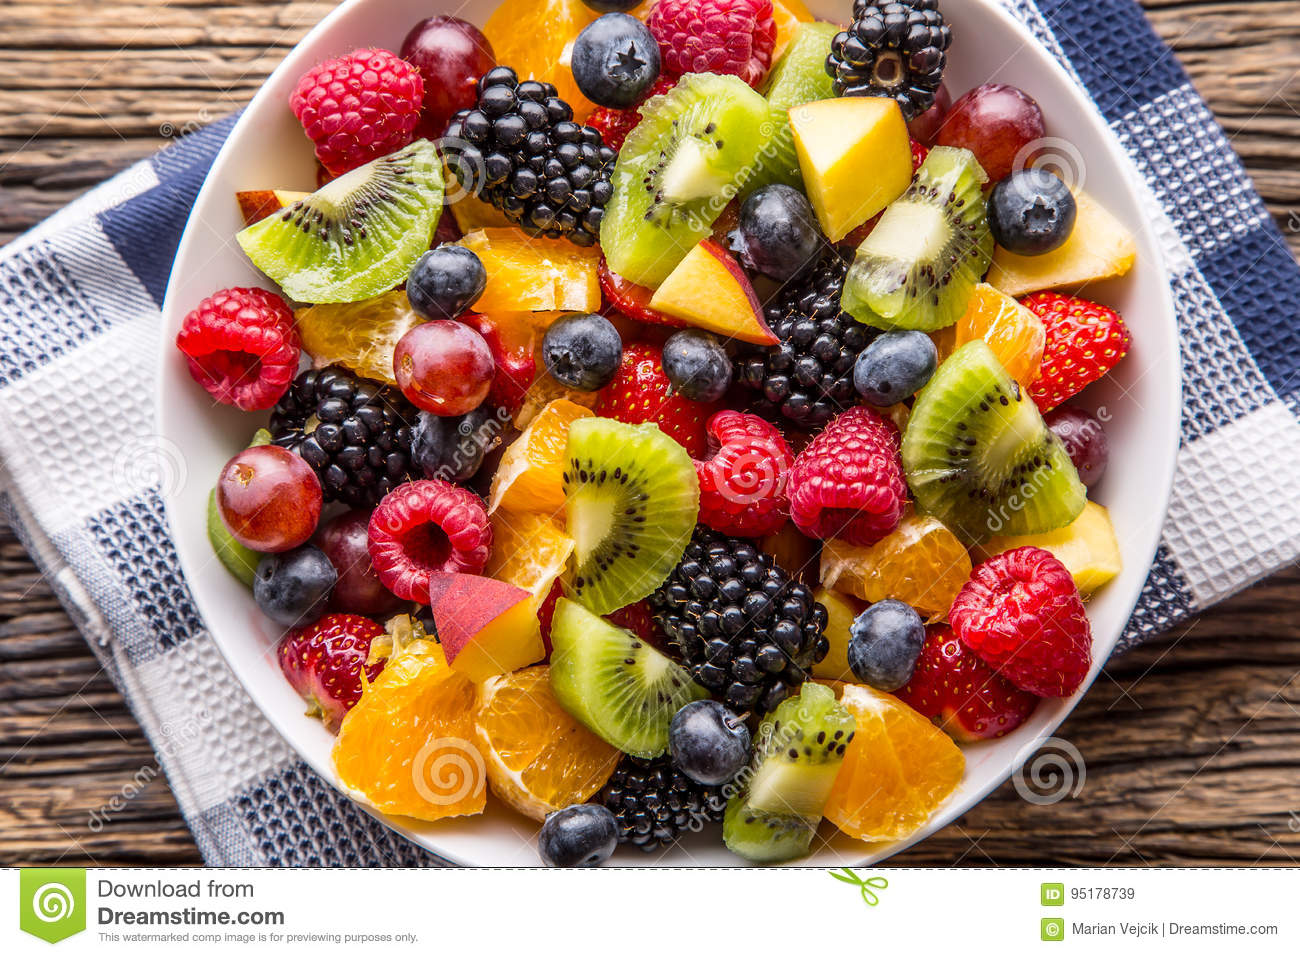 Fruit fresh mixed tropical fruit salad. Bowl of healthy fresh fruit salad - died and fitness concept